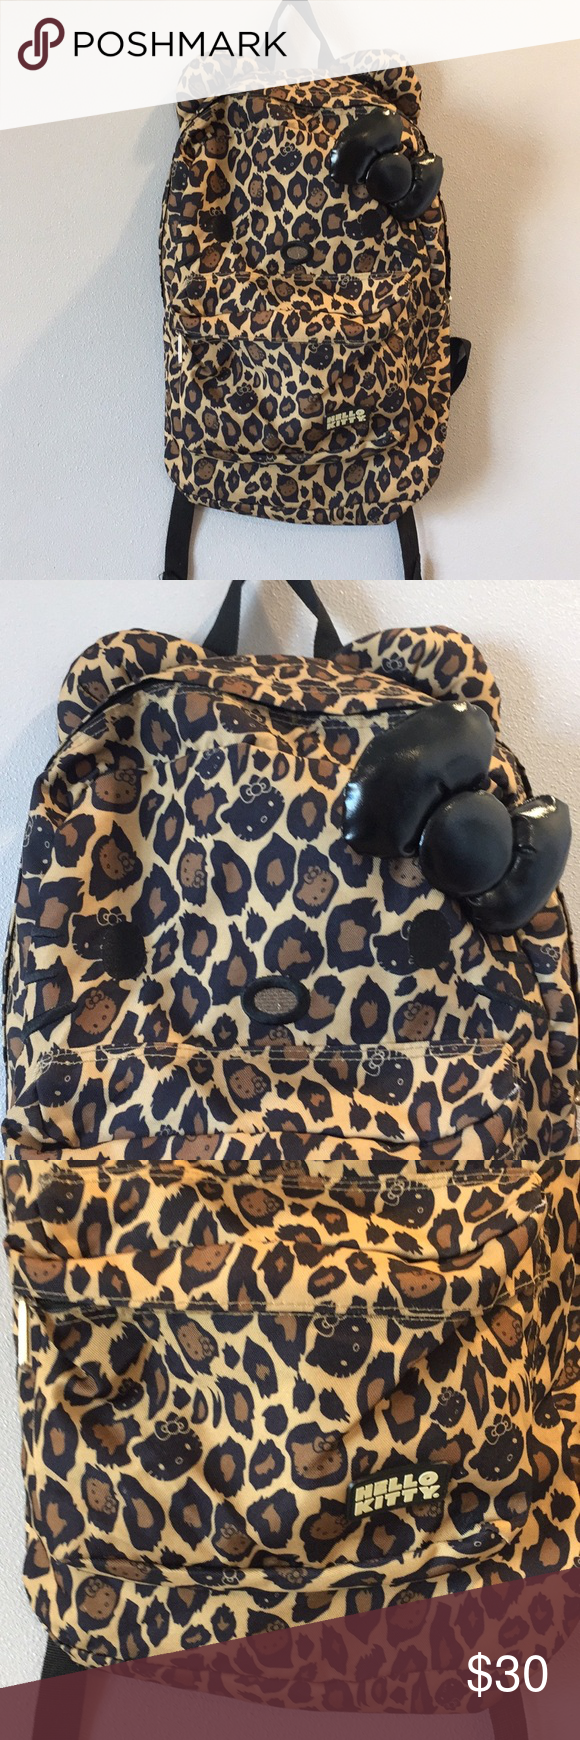 4e310d0536c3 Hello Kitty Backpack Leopard Back To School Large Hello Kitty Leopard Print  Backpack Large Size Great